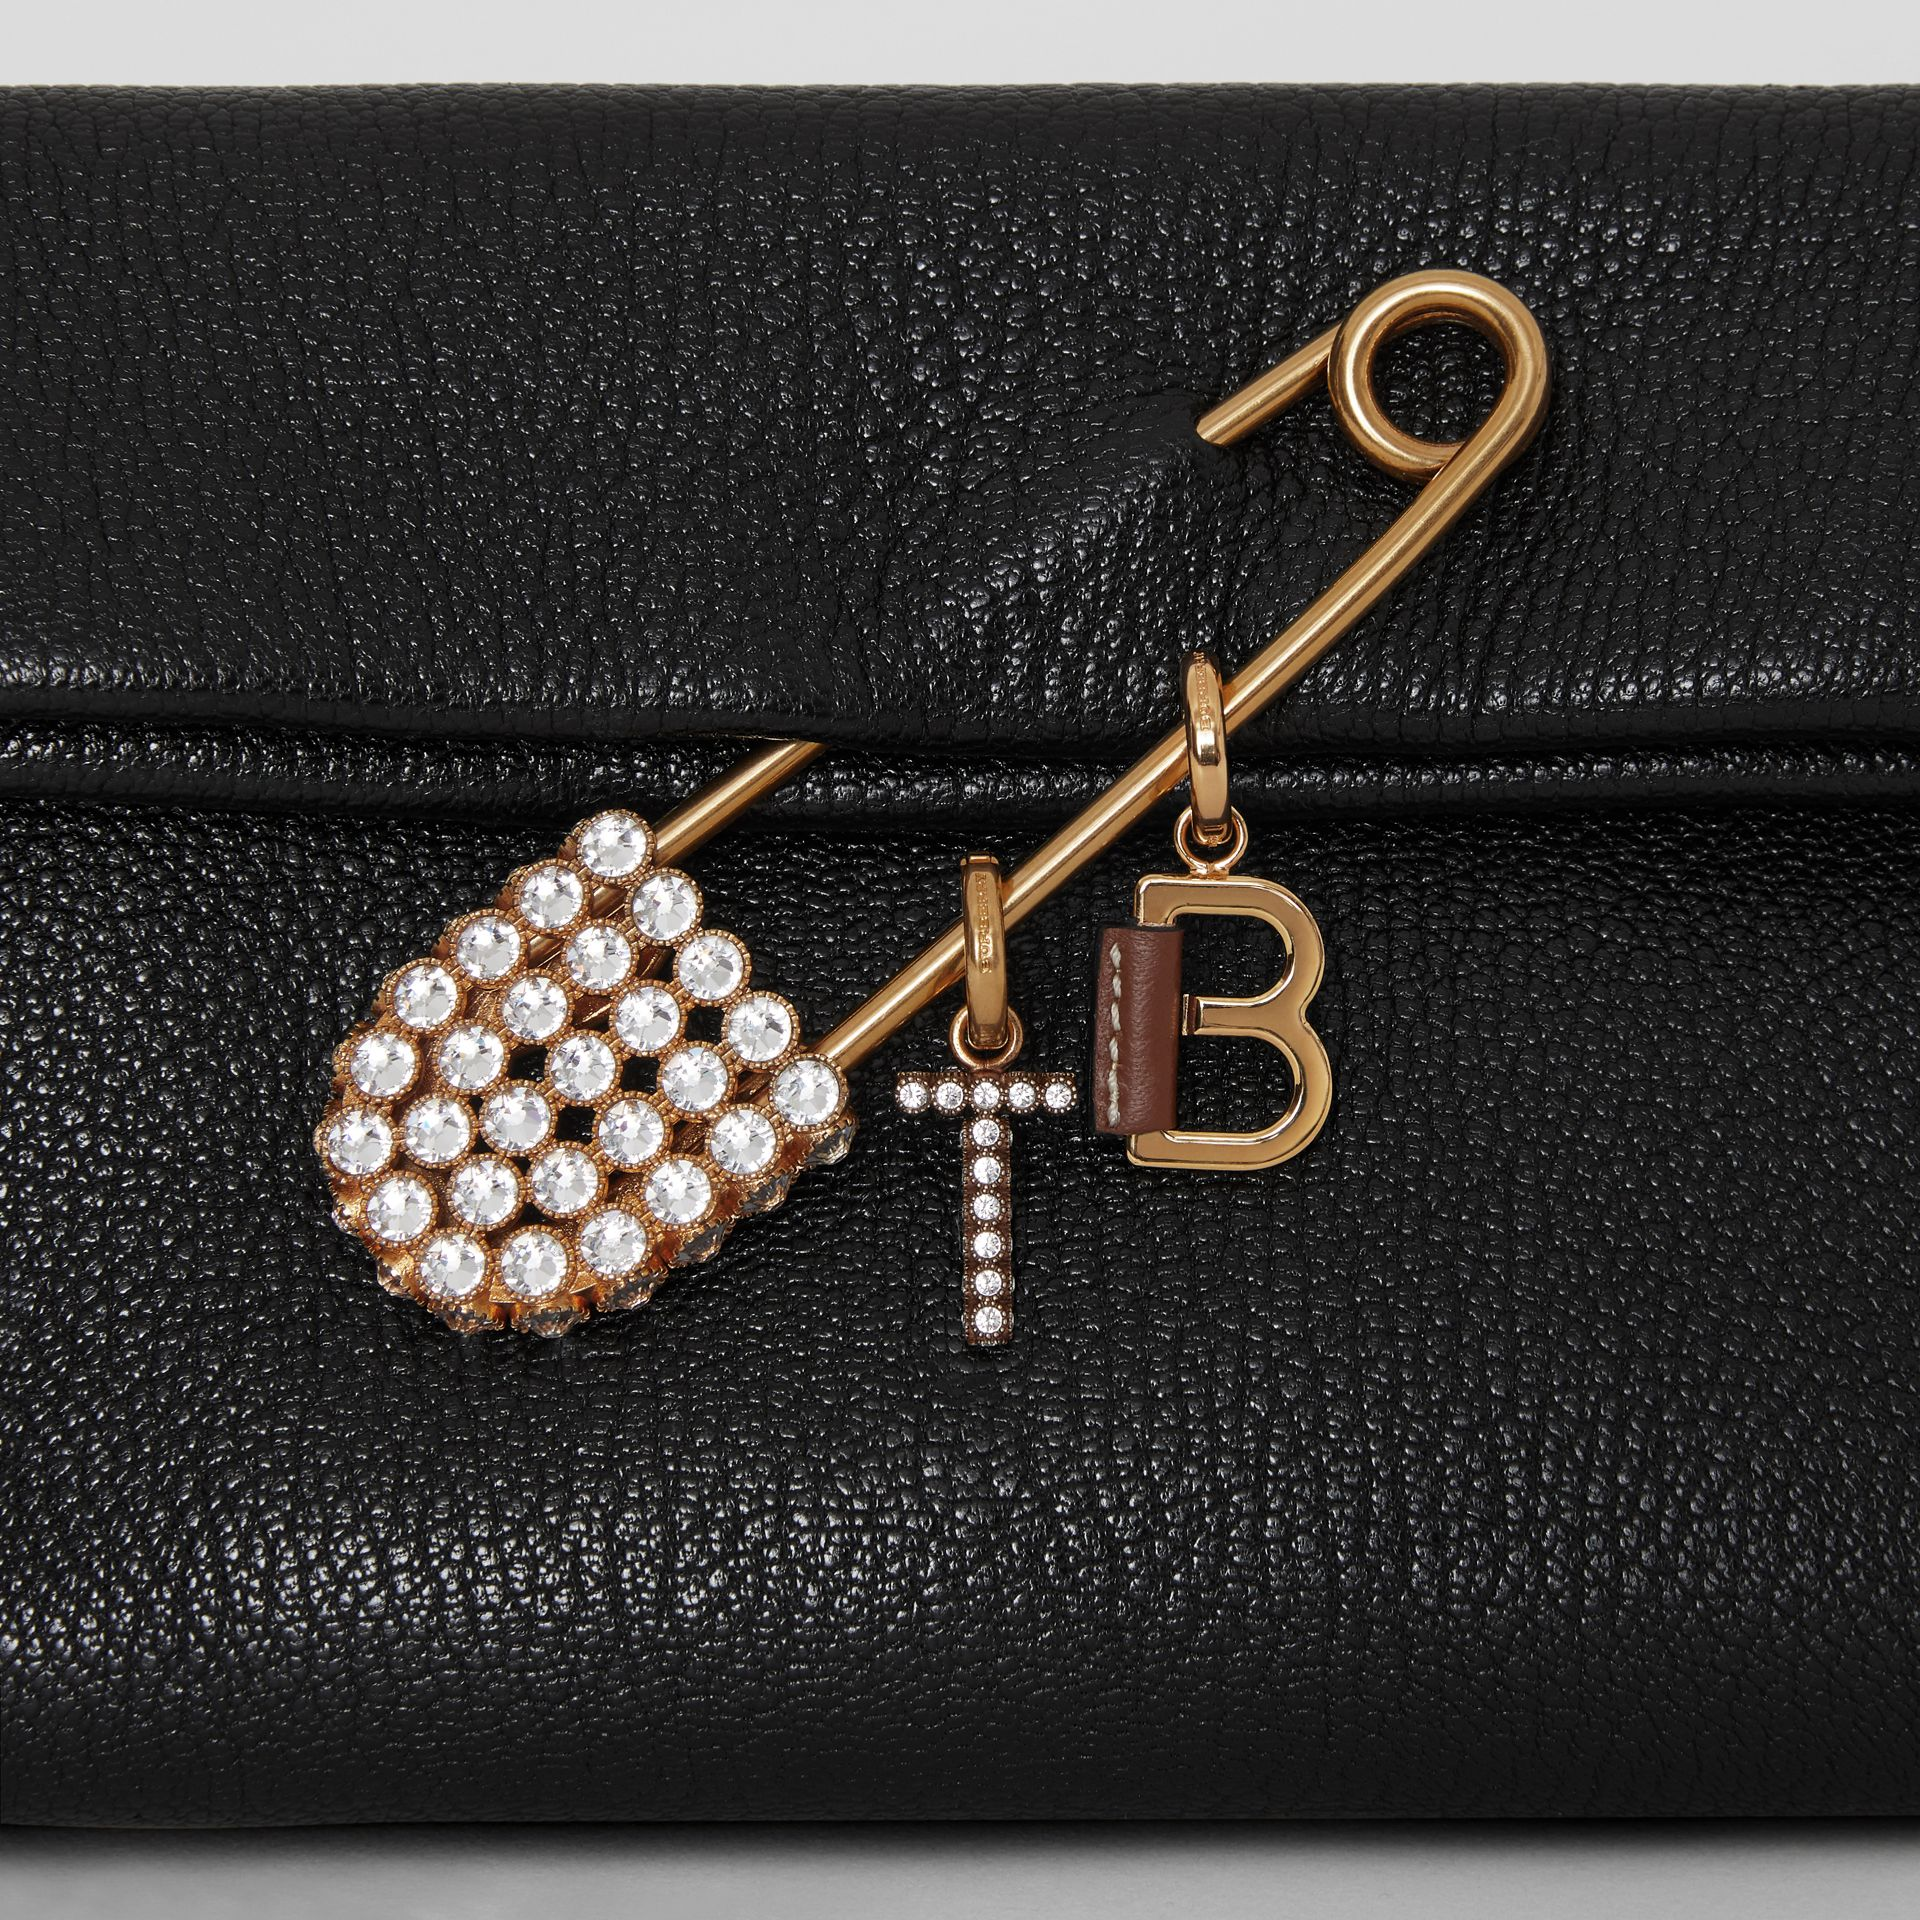 Leather-topstitched 'H' Alphabet Charm in Palladio/grey - Women | Burberry Australia - gallery image 2